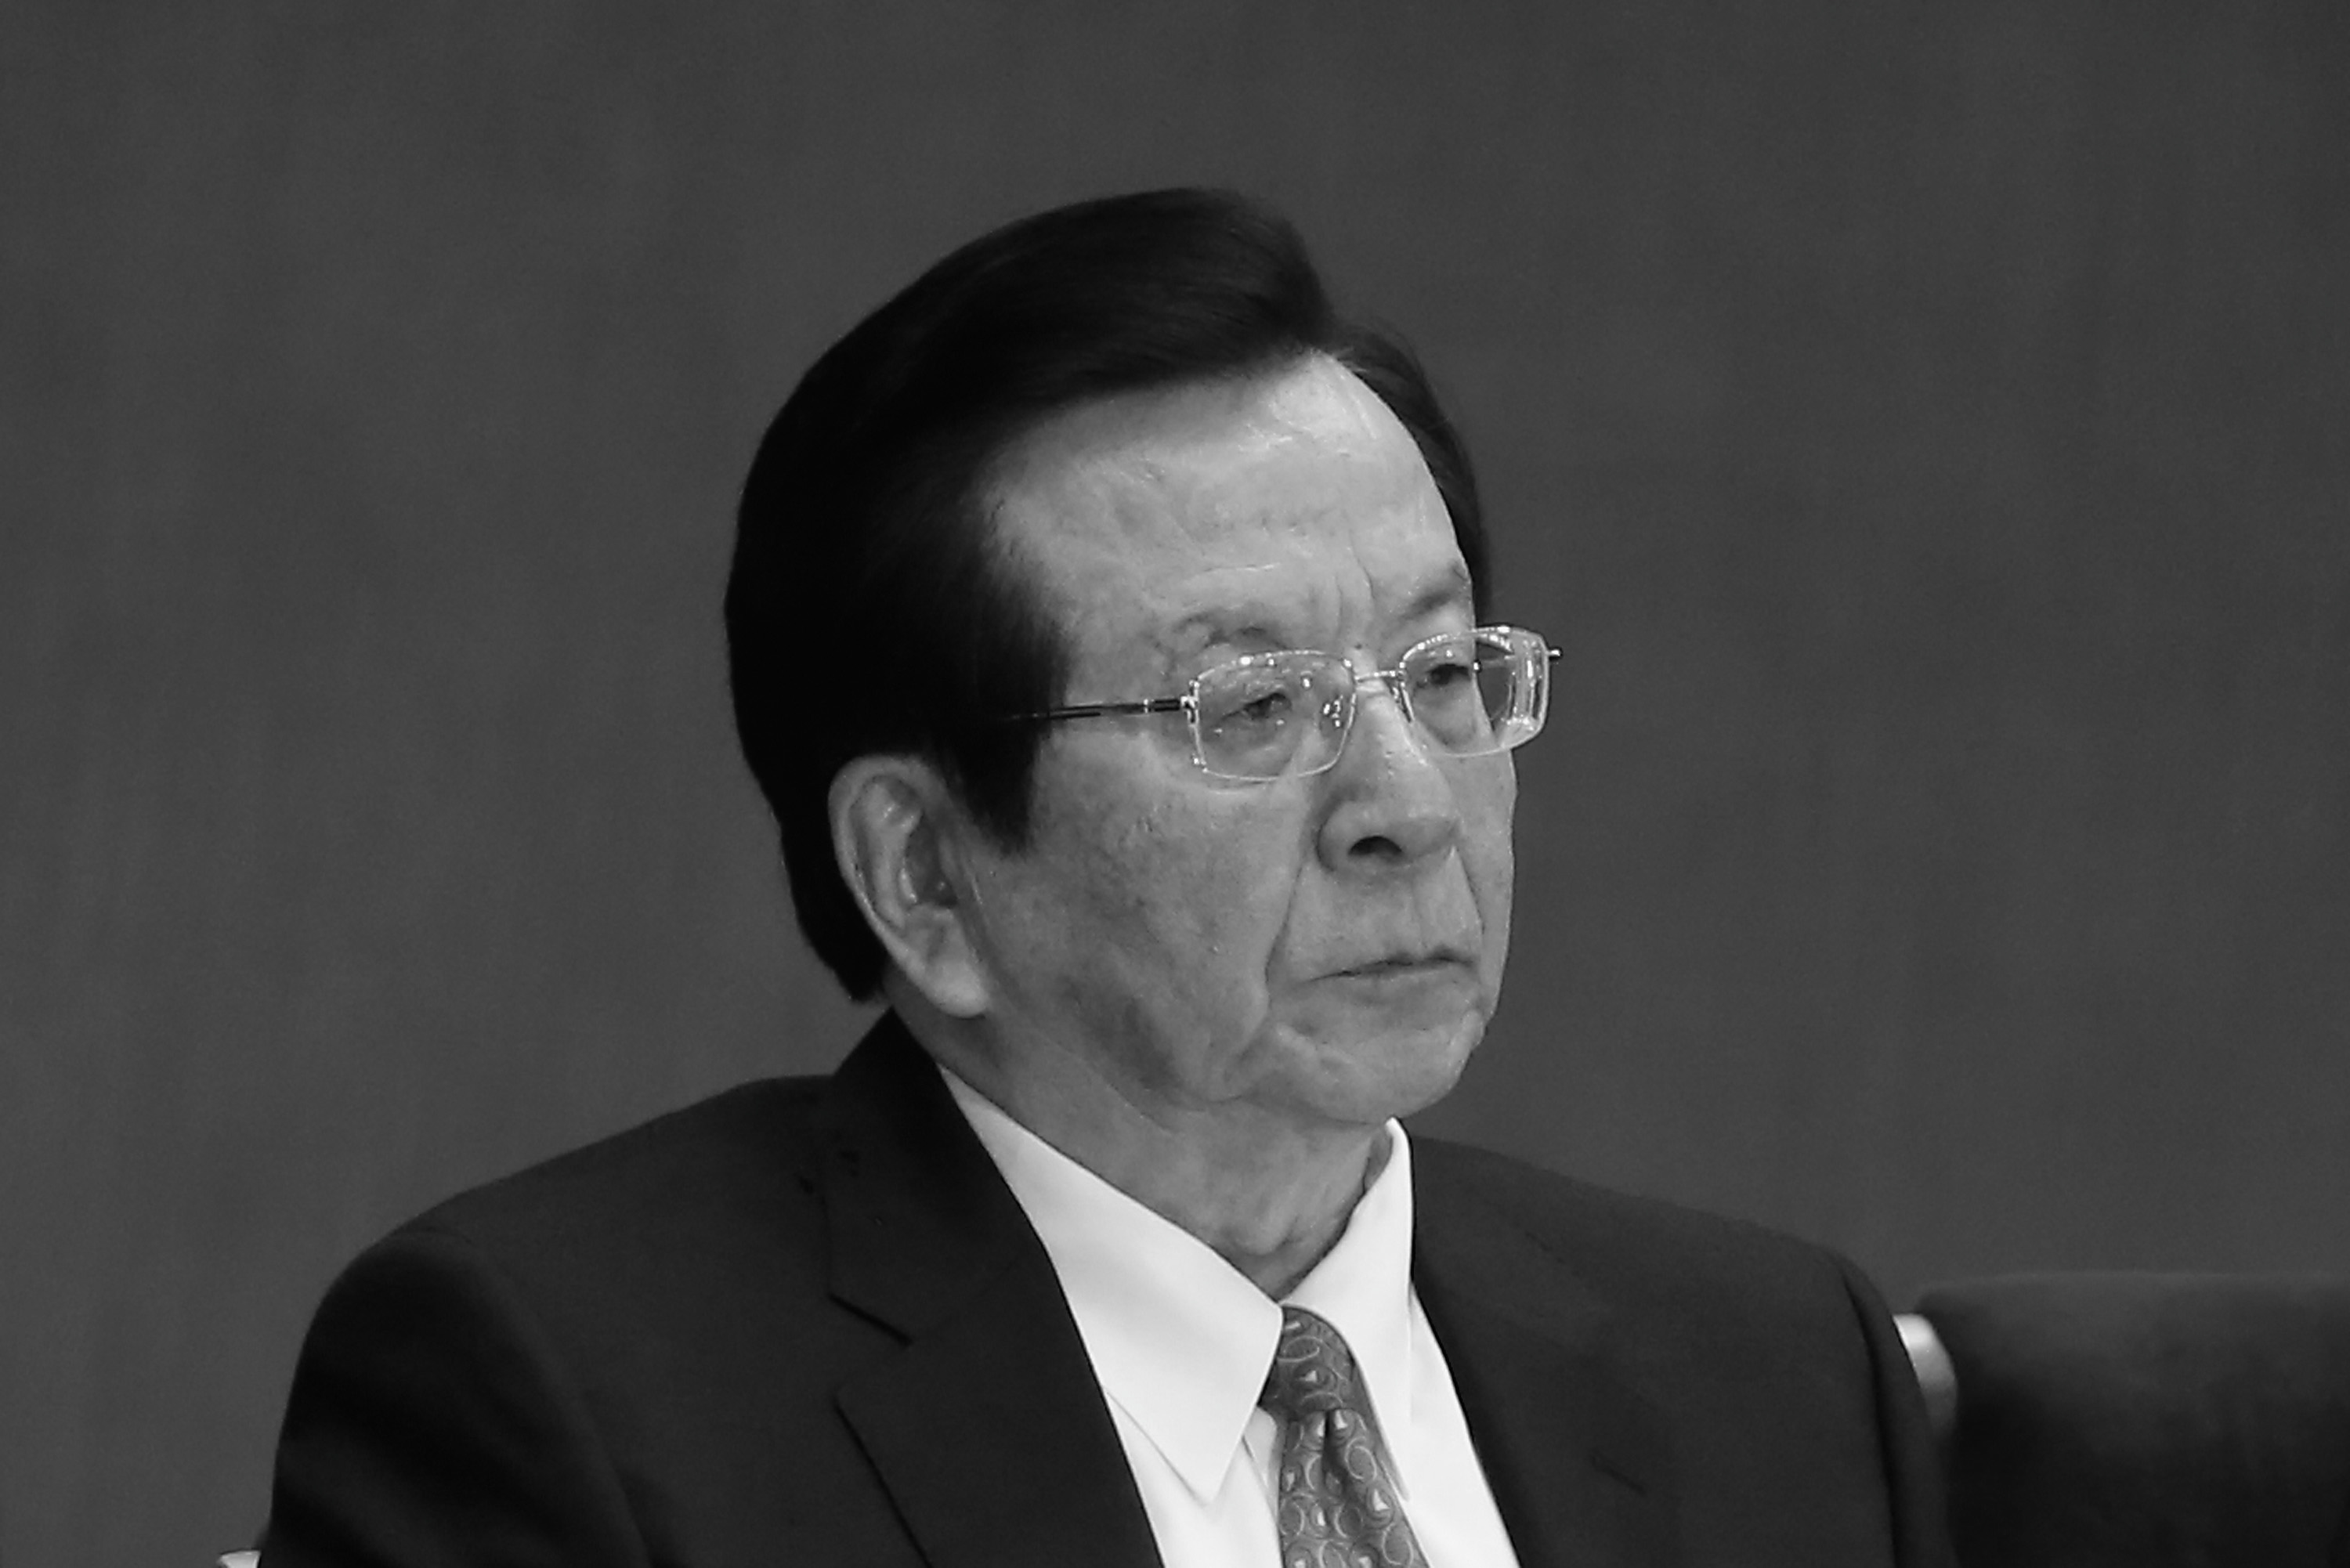 Probe Into Electricity Chief May Foreshadow Downfall of Former Powerful Party Official